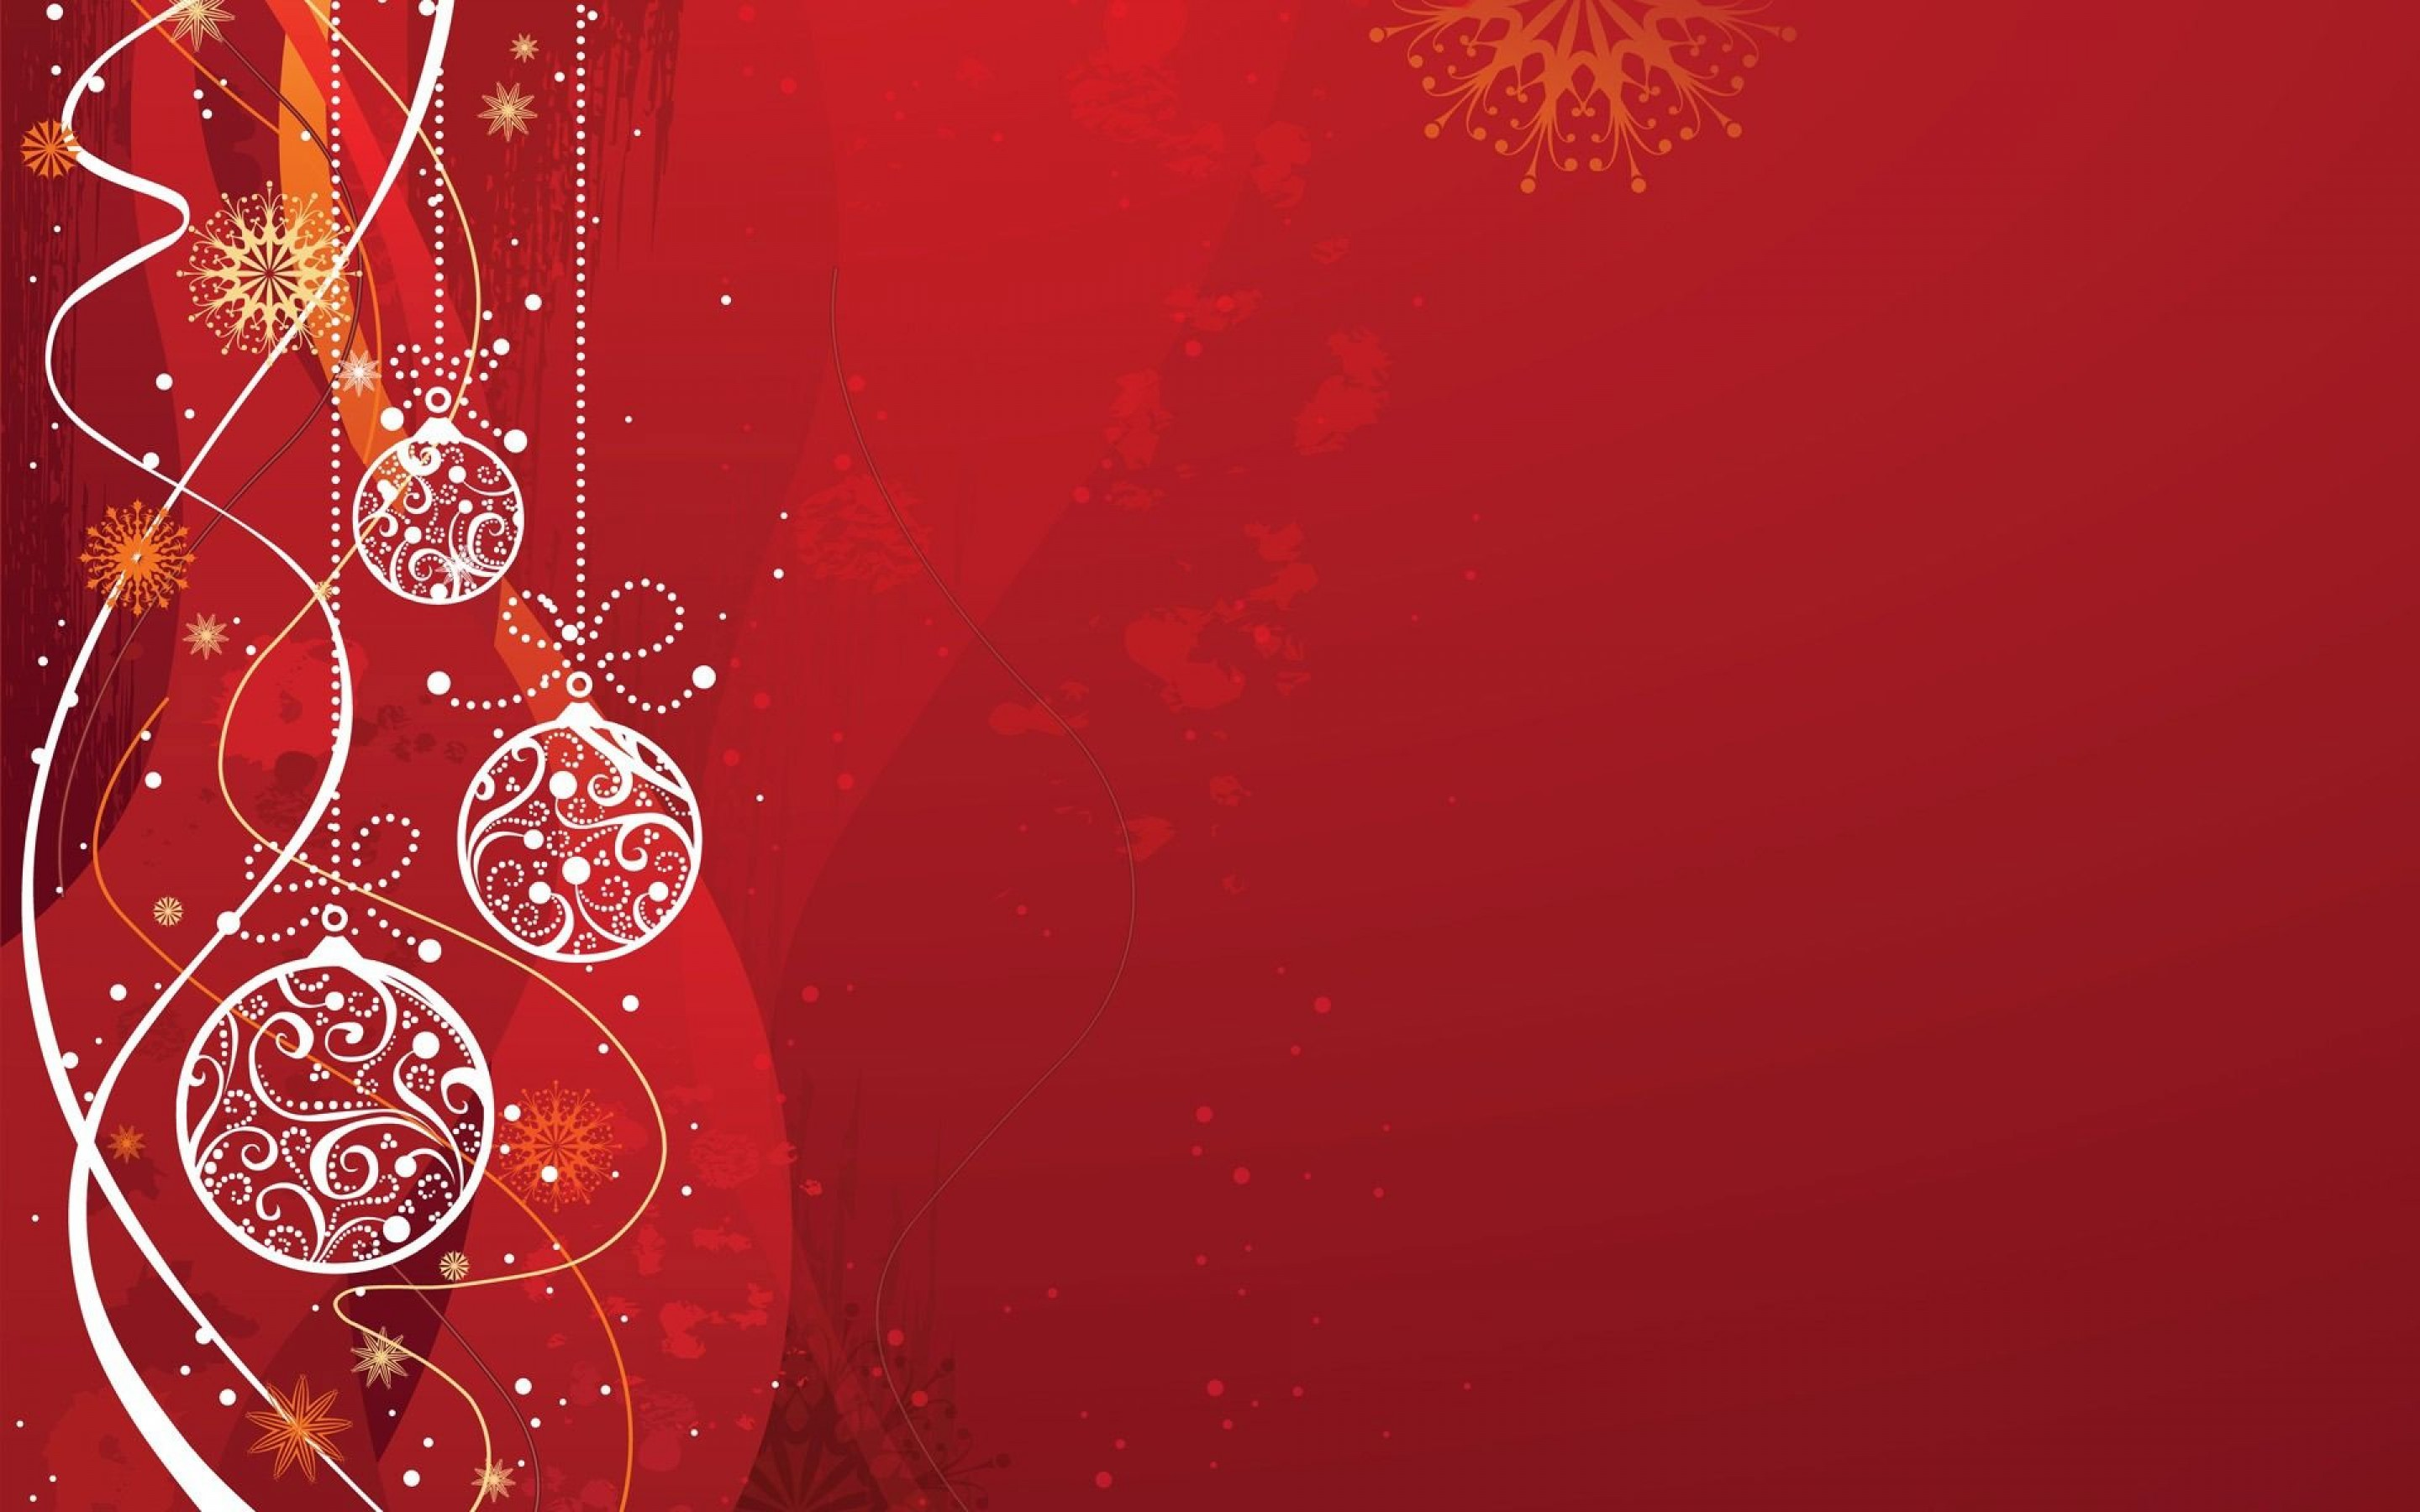 HD Red Christmas Backgrounds Full HD Pictures 2880x1800